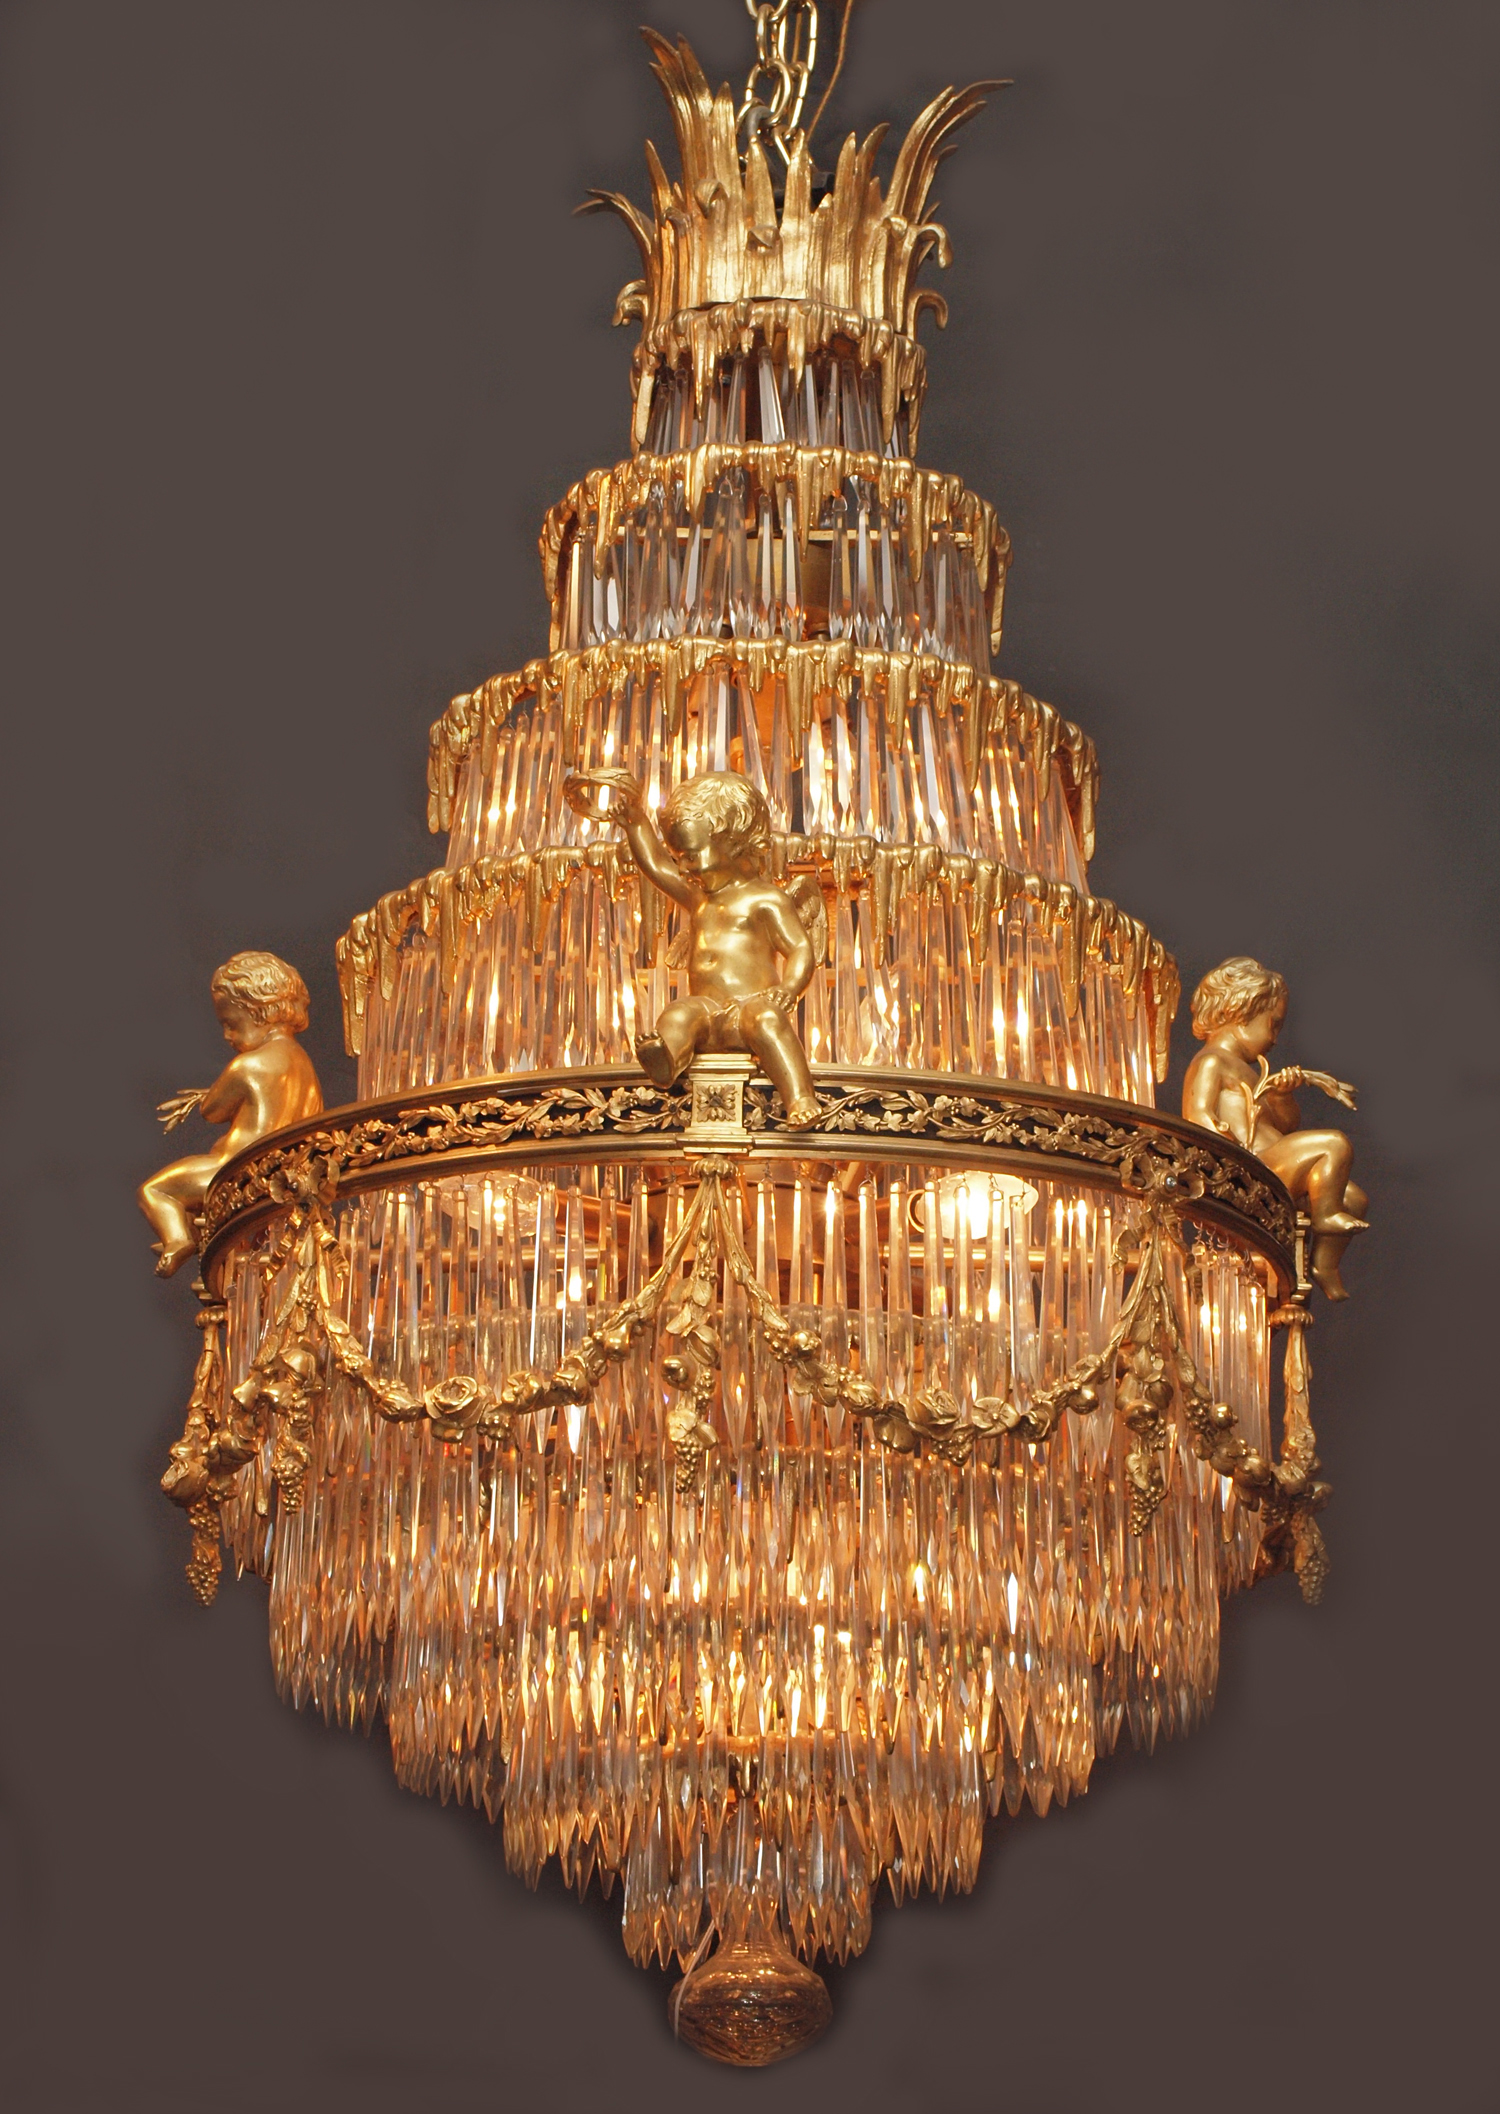 Antique french belle epoch baccarat crystal and ormolu waterfall chandelier chc110 for sale - Chandeliers on sale online ...